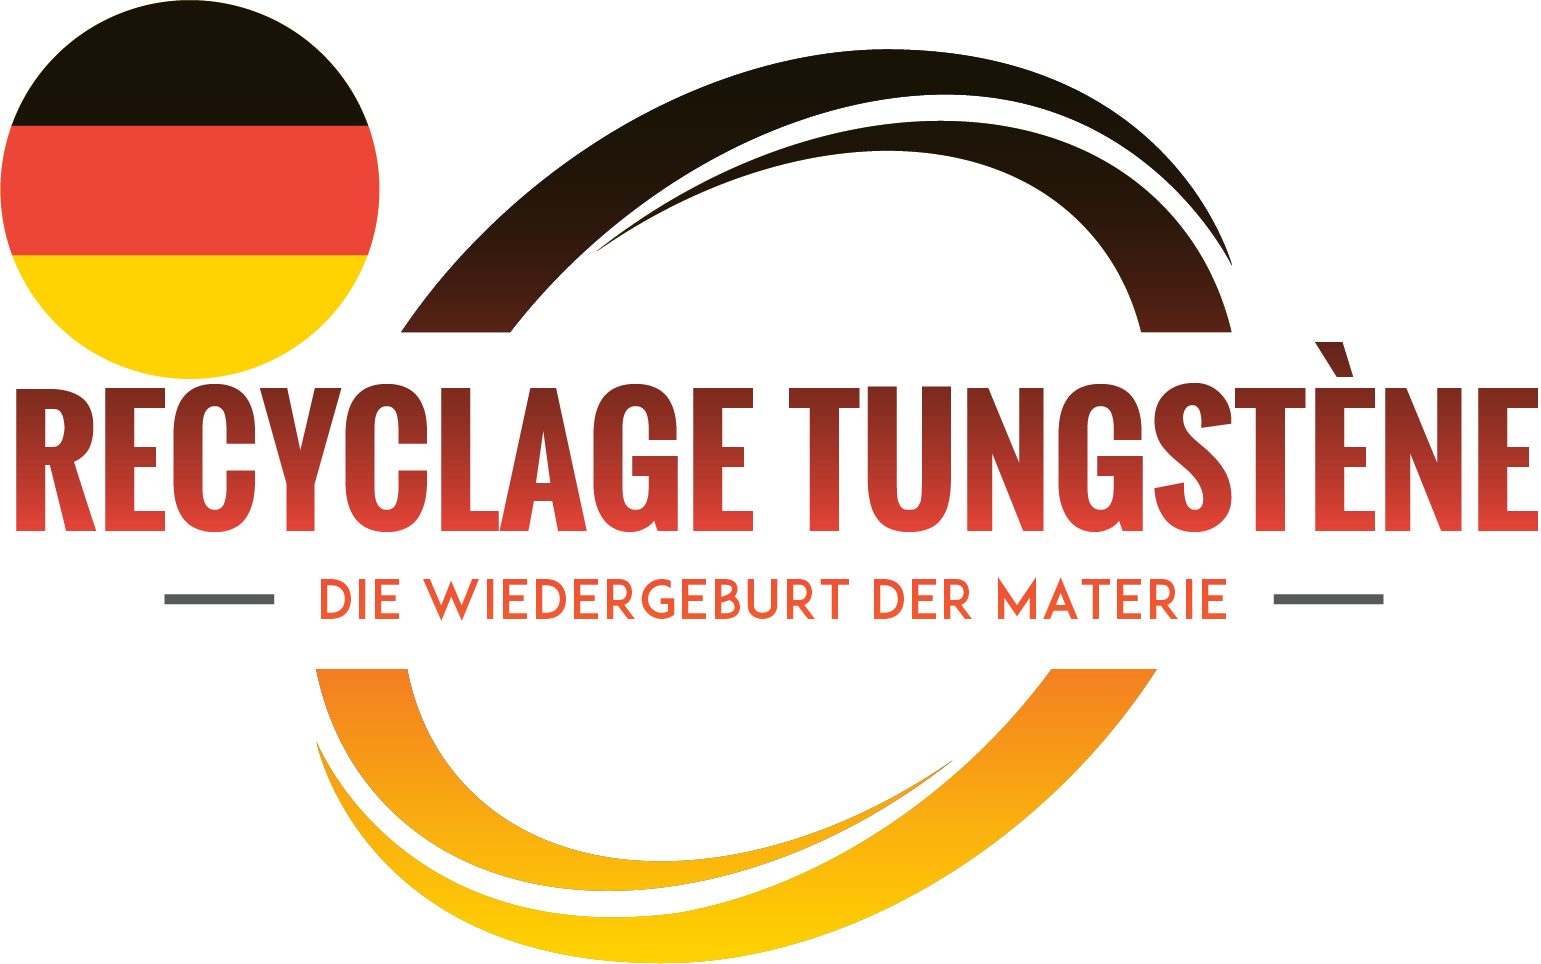 logo Recyclage Tungstène Allemagne